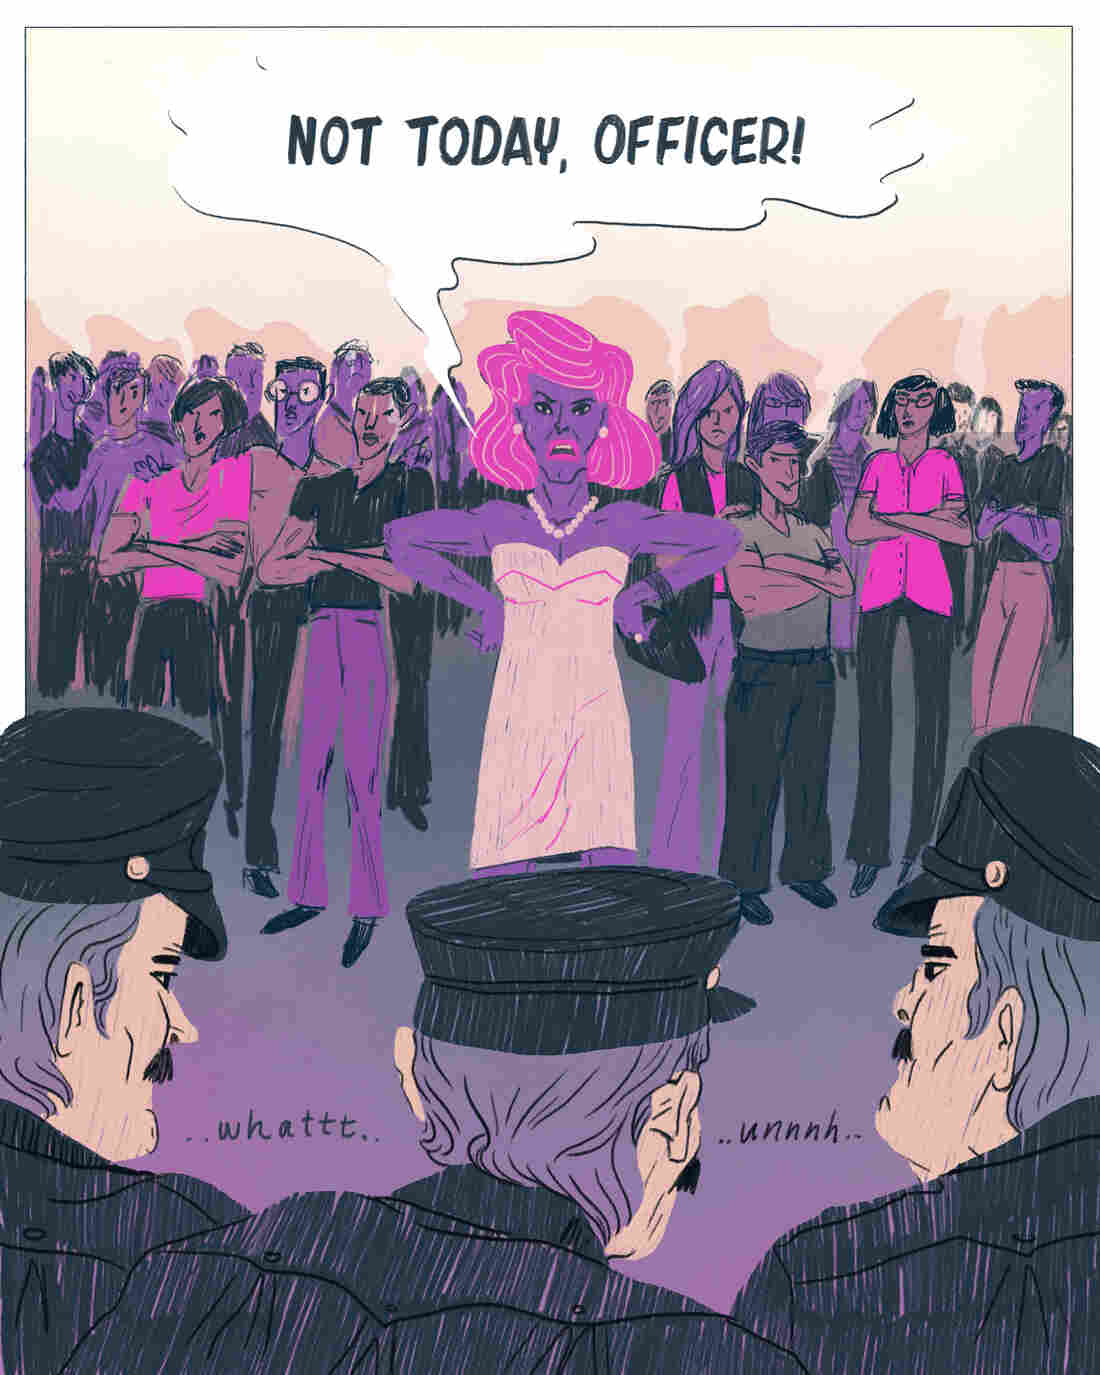 Stonewall patrons stood up to police during a raid on June 28, 1969.